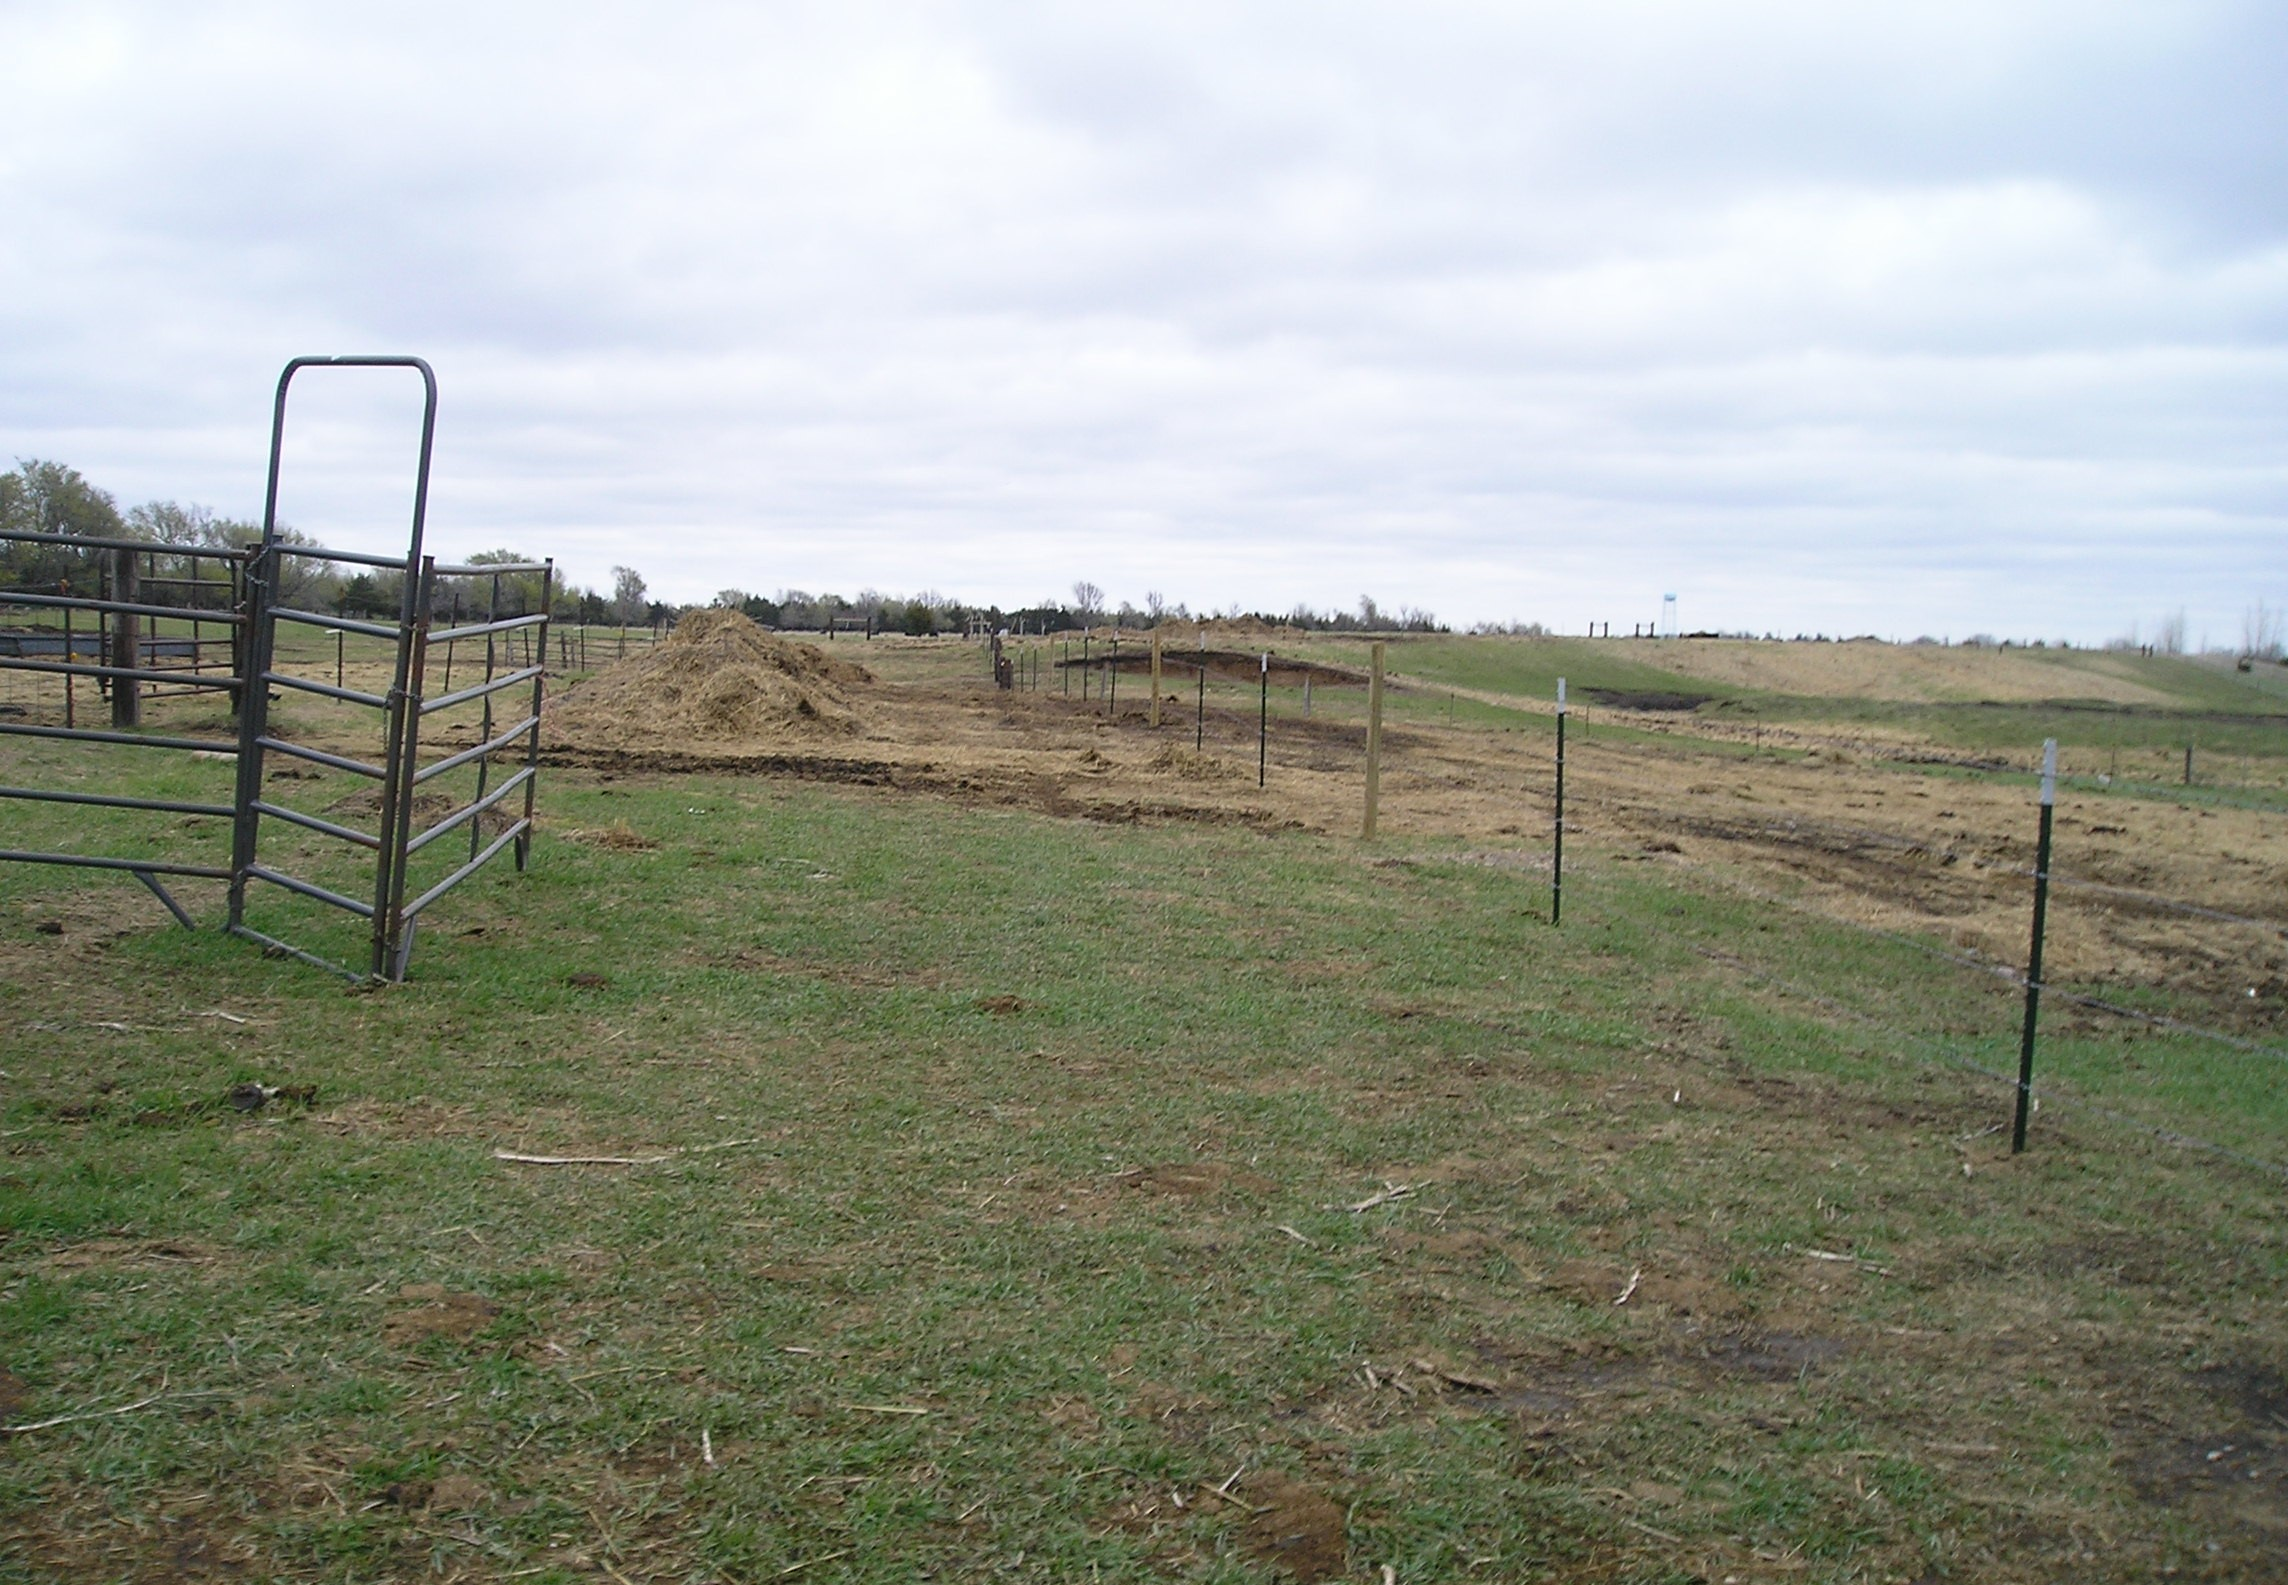 fencing protects stream from livestock manure erosion